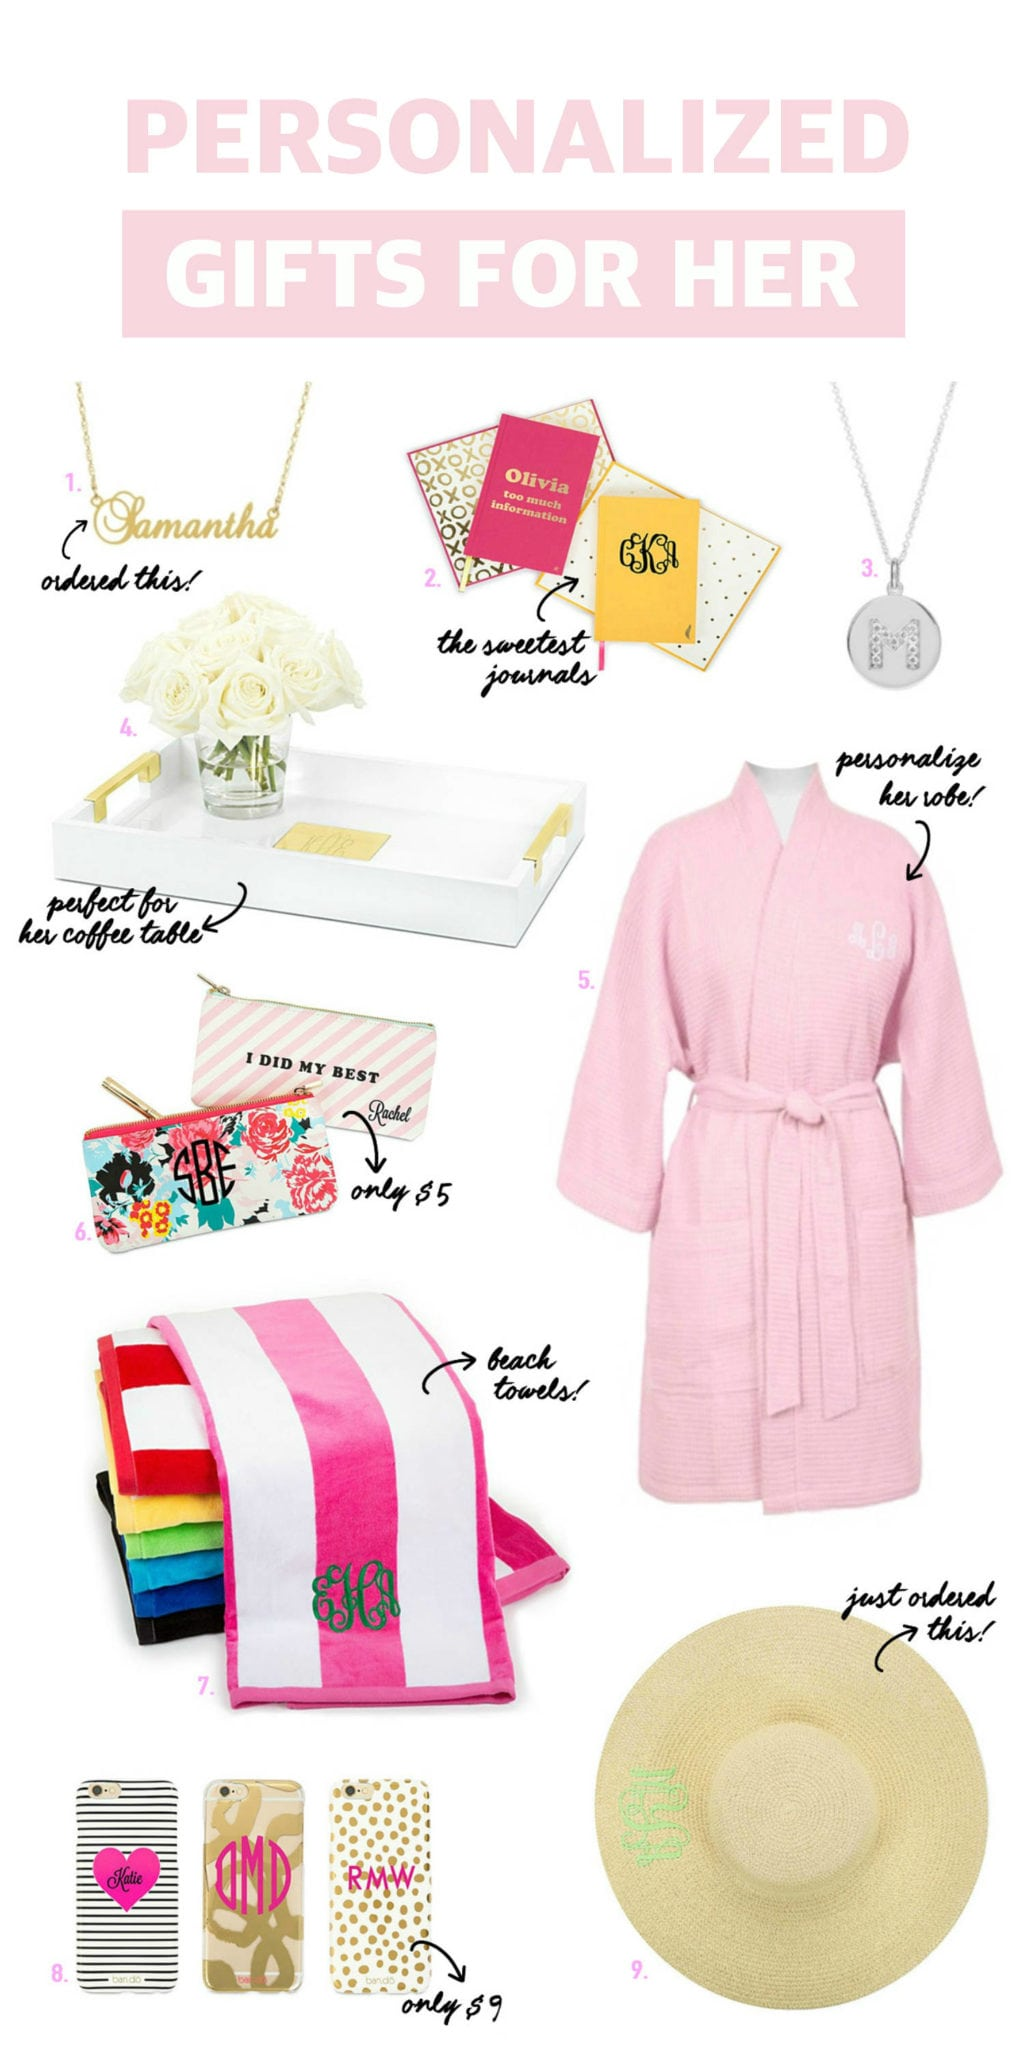 best personalized gifts for her   Mash Elle   monogram hats, bath robes, necklaces, makeup bags, bar cart